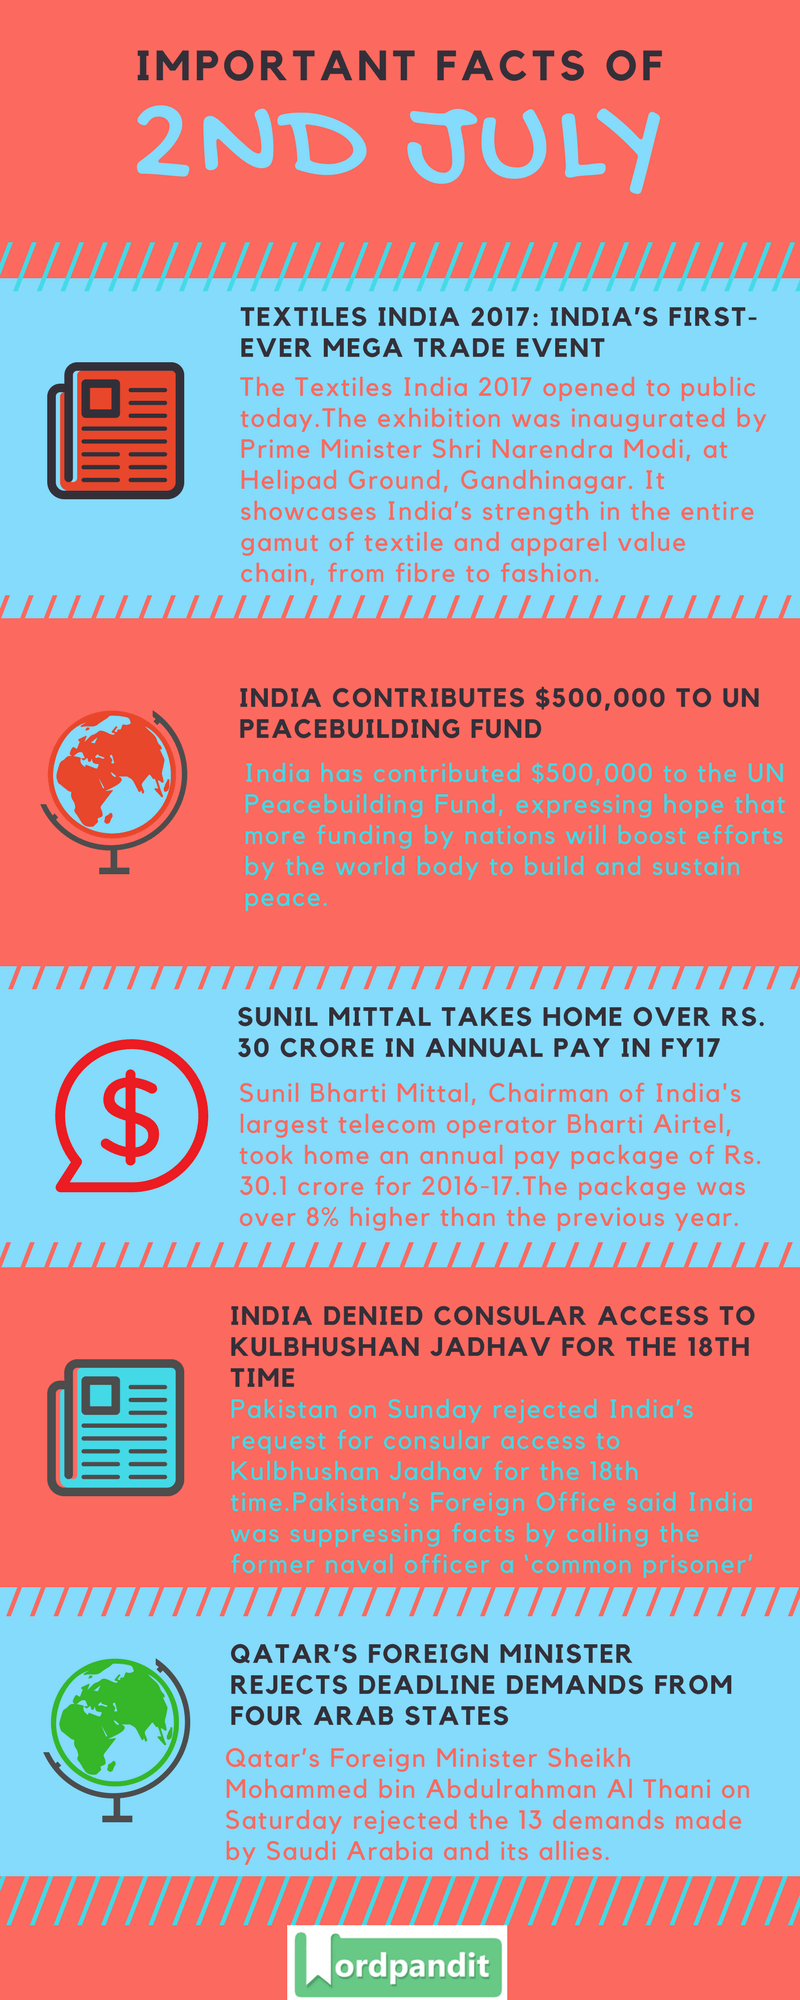 Daily-Current-Affairs-2-july-2017-and-Current-Affairs-Infographic-2-july-2017